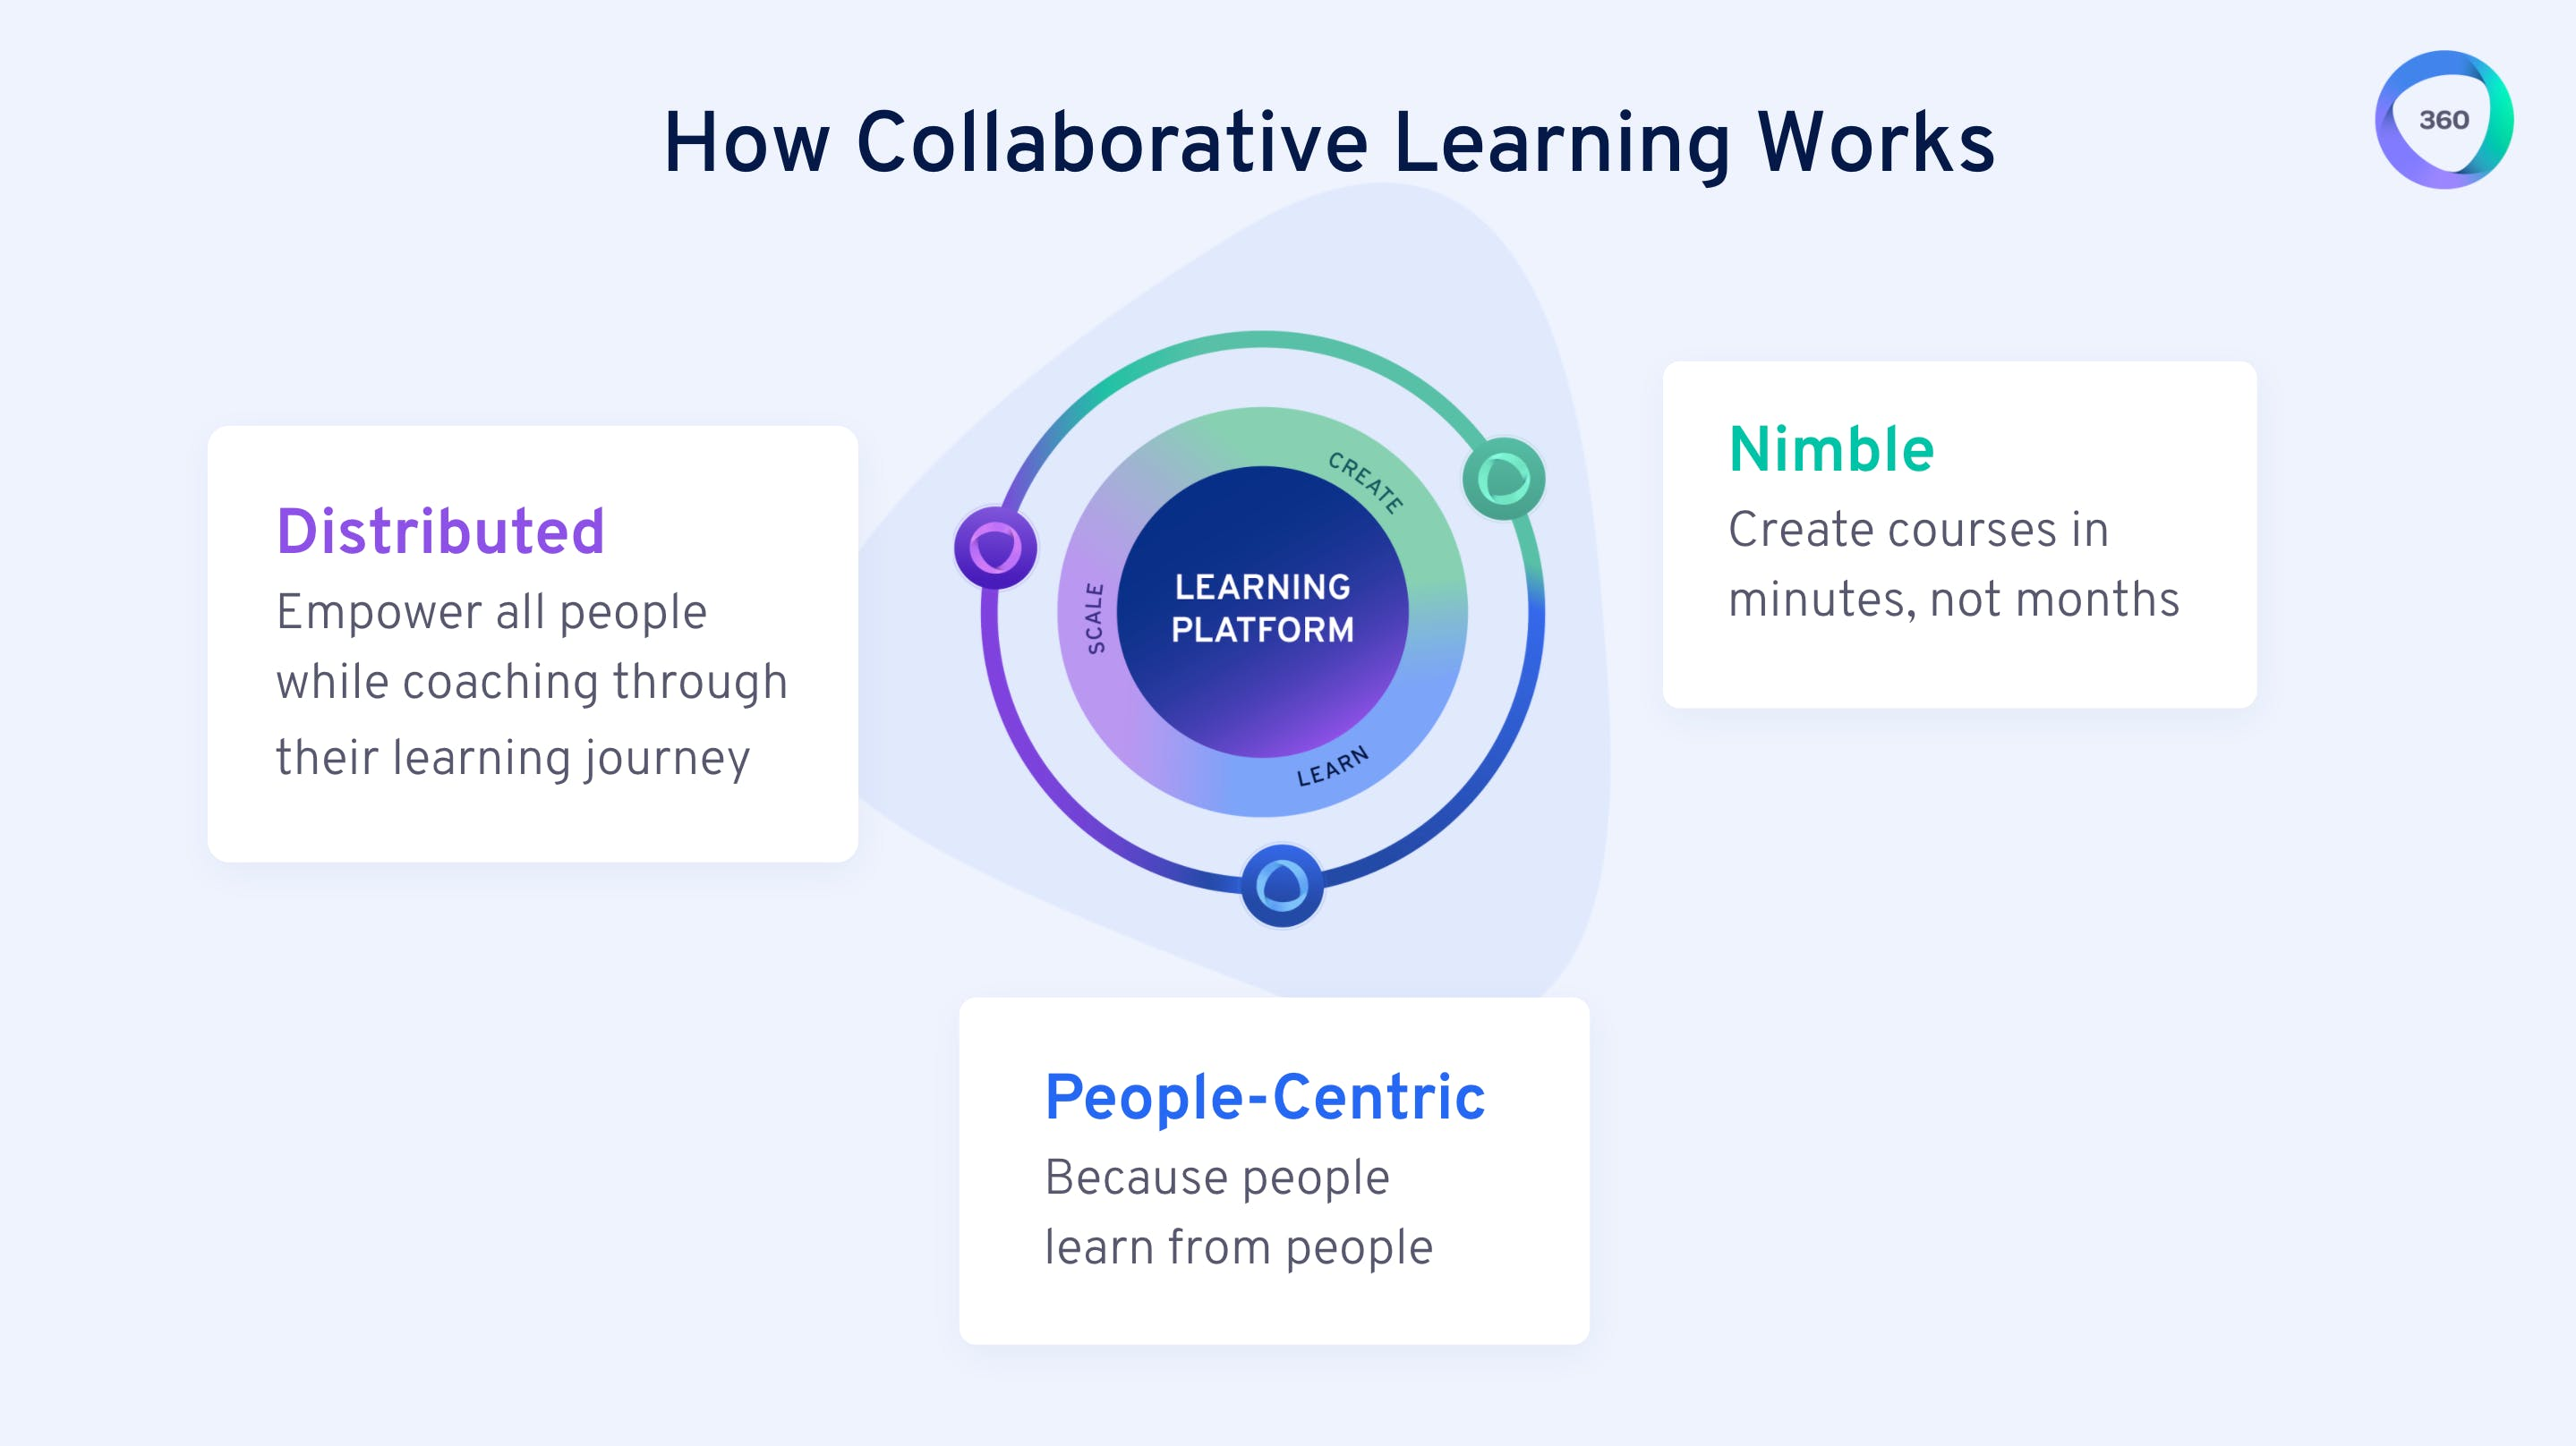 How collaborative learning works